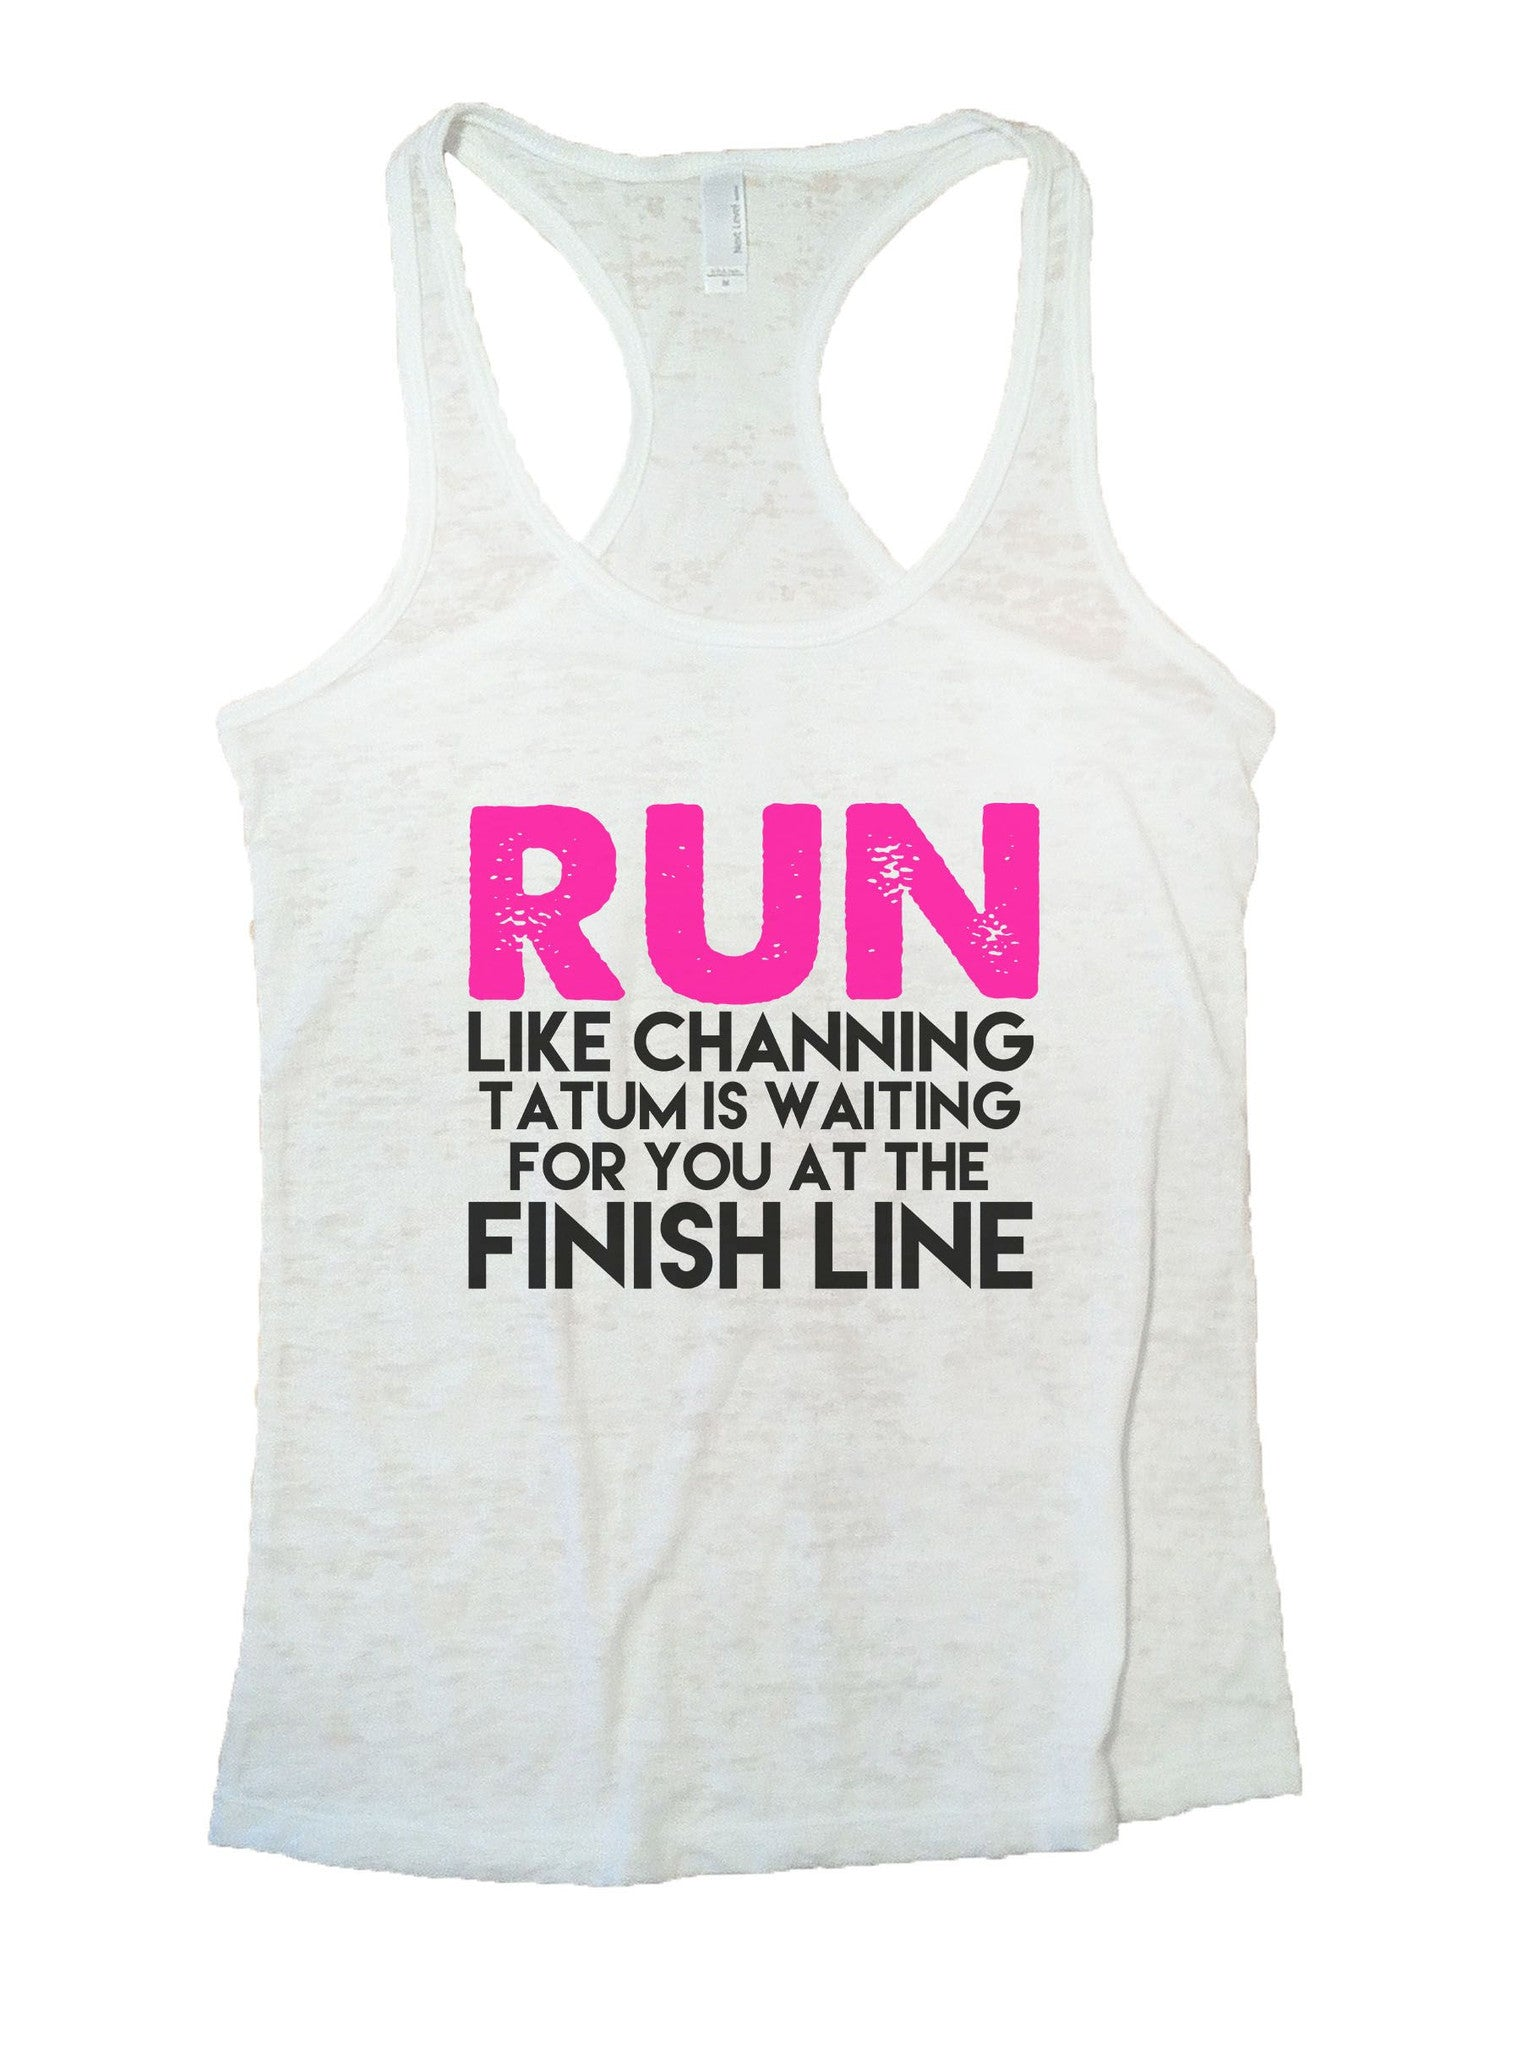 Run Like Channing Tatum Is Waiting For You At The Finish Line Burnout Tank Top By BurnoutTankTops.com - 872 - Funny Shirts Tank Tops Burnouts and Triblends  - 6